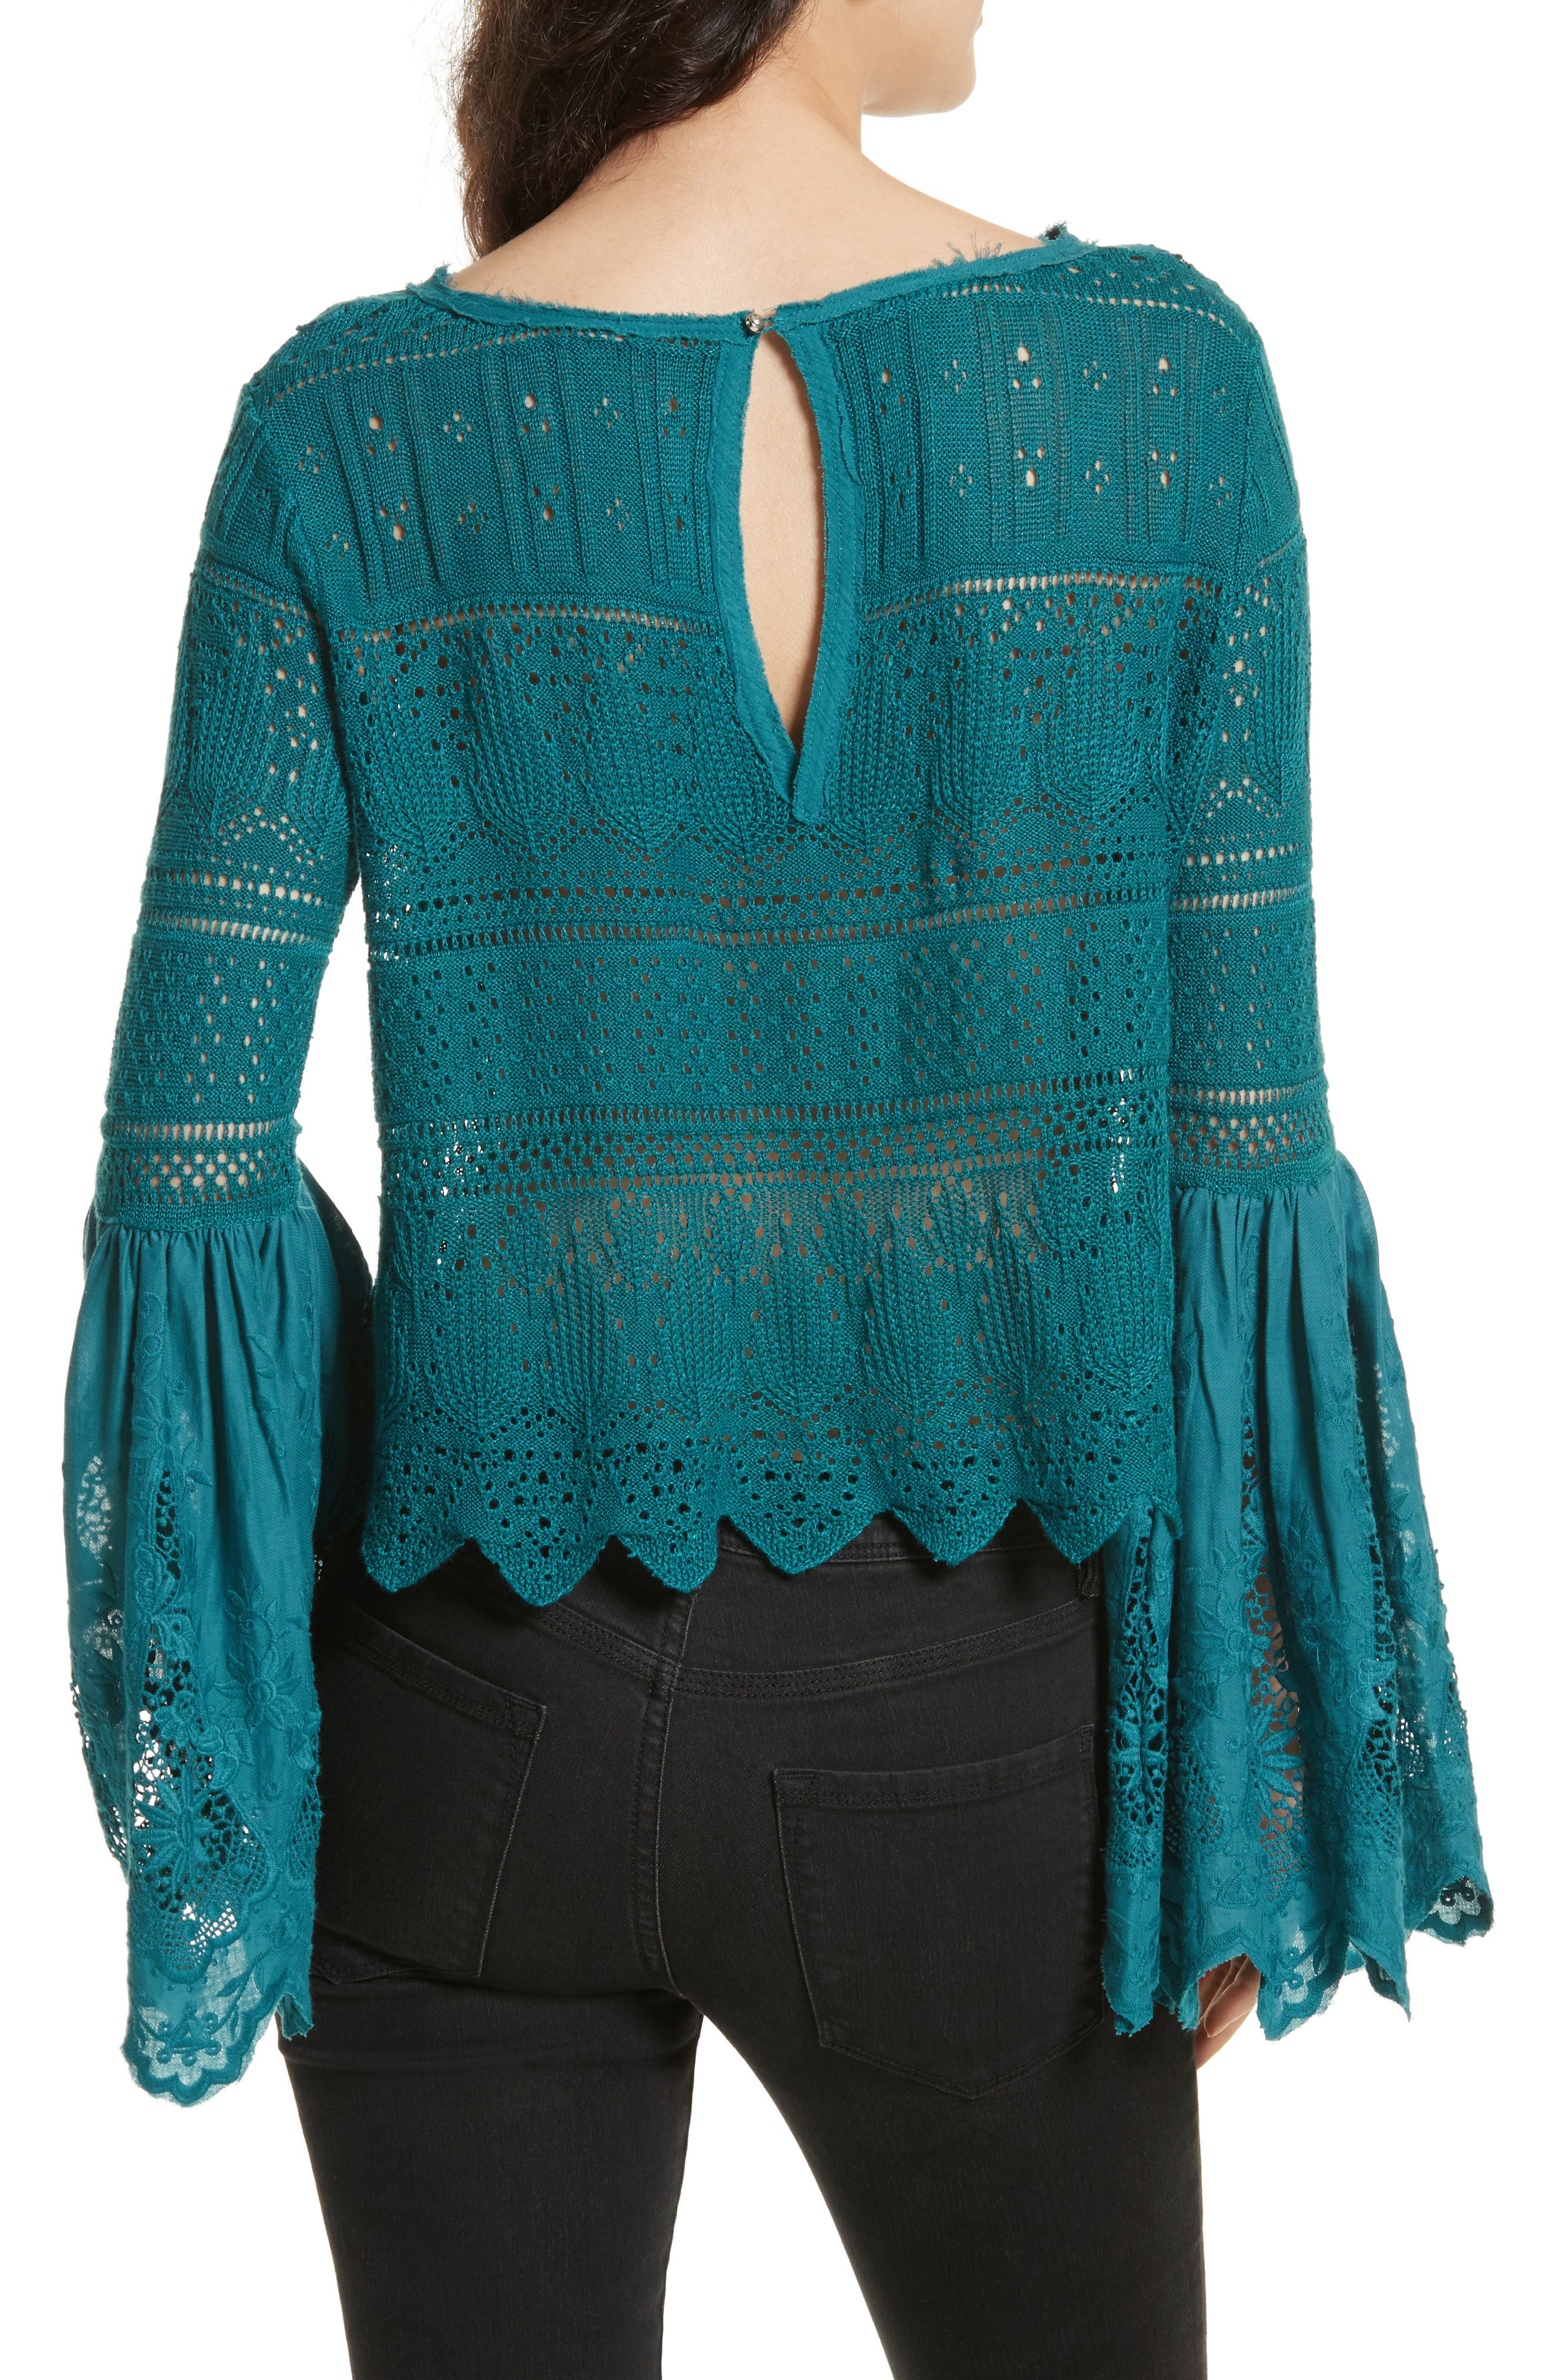 Once Upon a Time Lace Top,                             Alternate thumbnail 6, color,